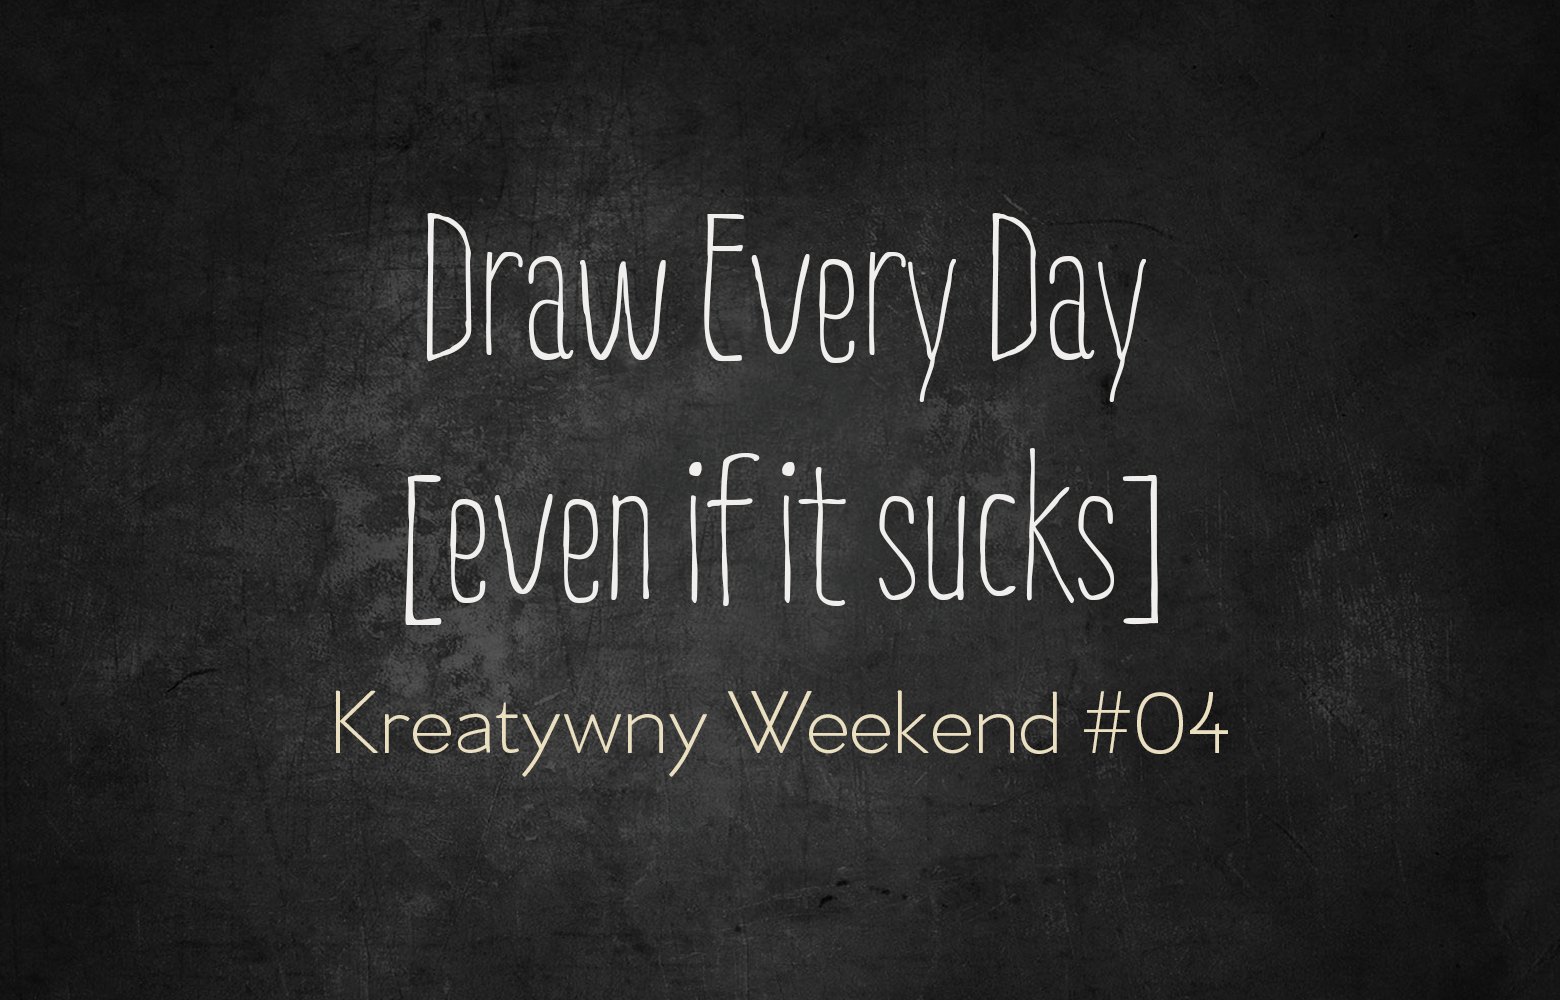 Kreatywny Weekend